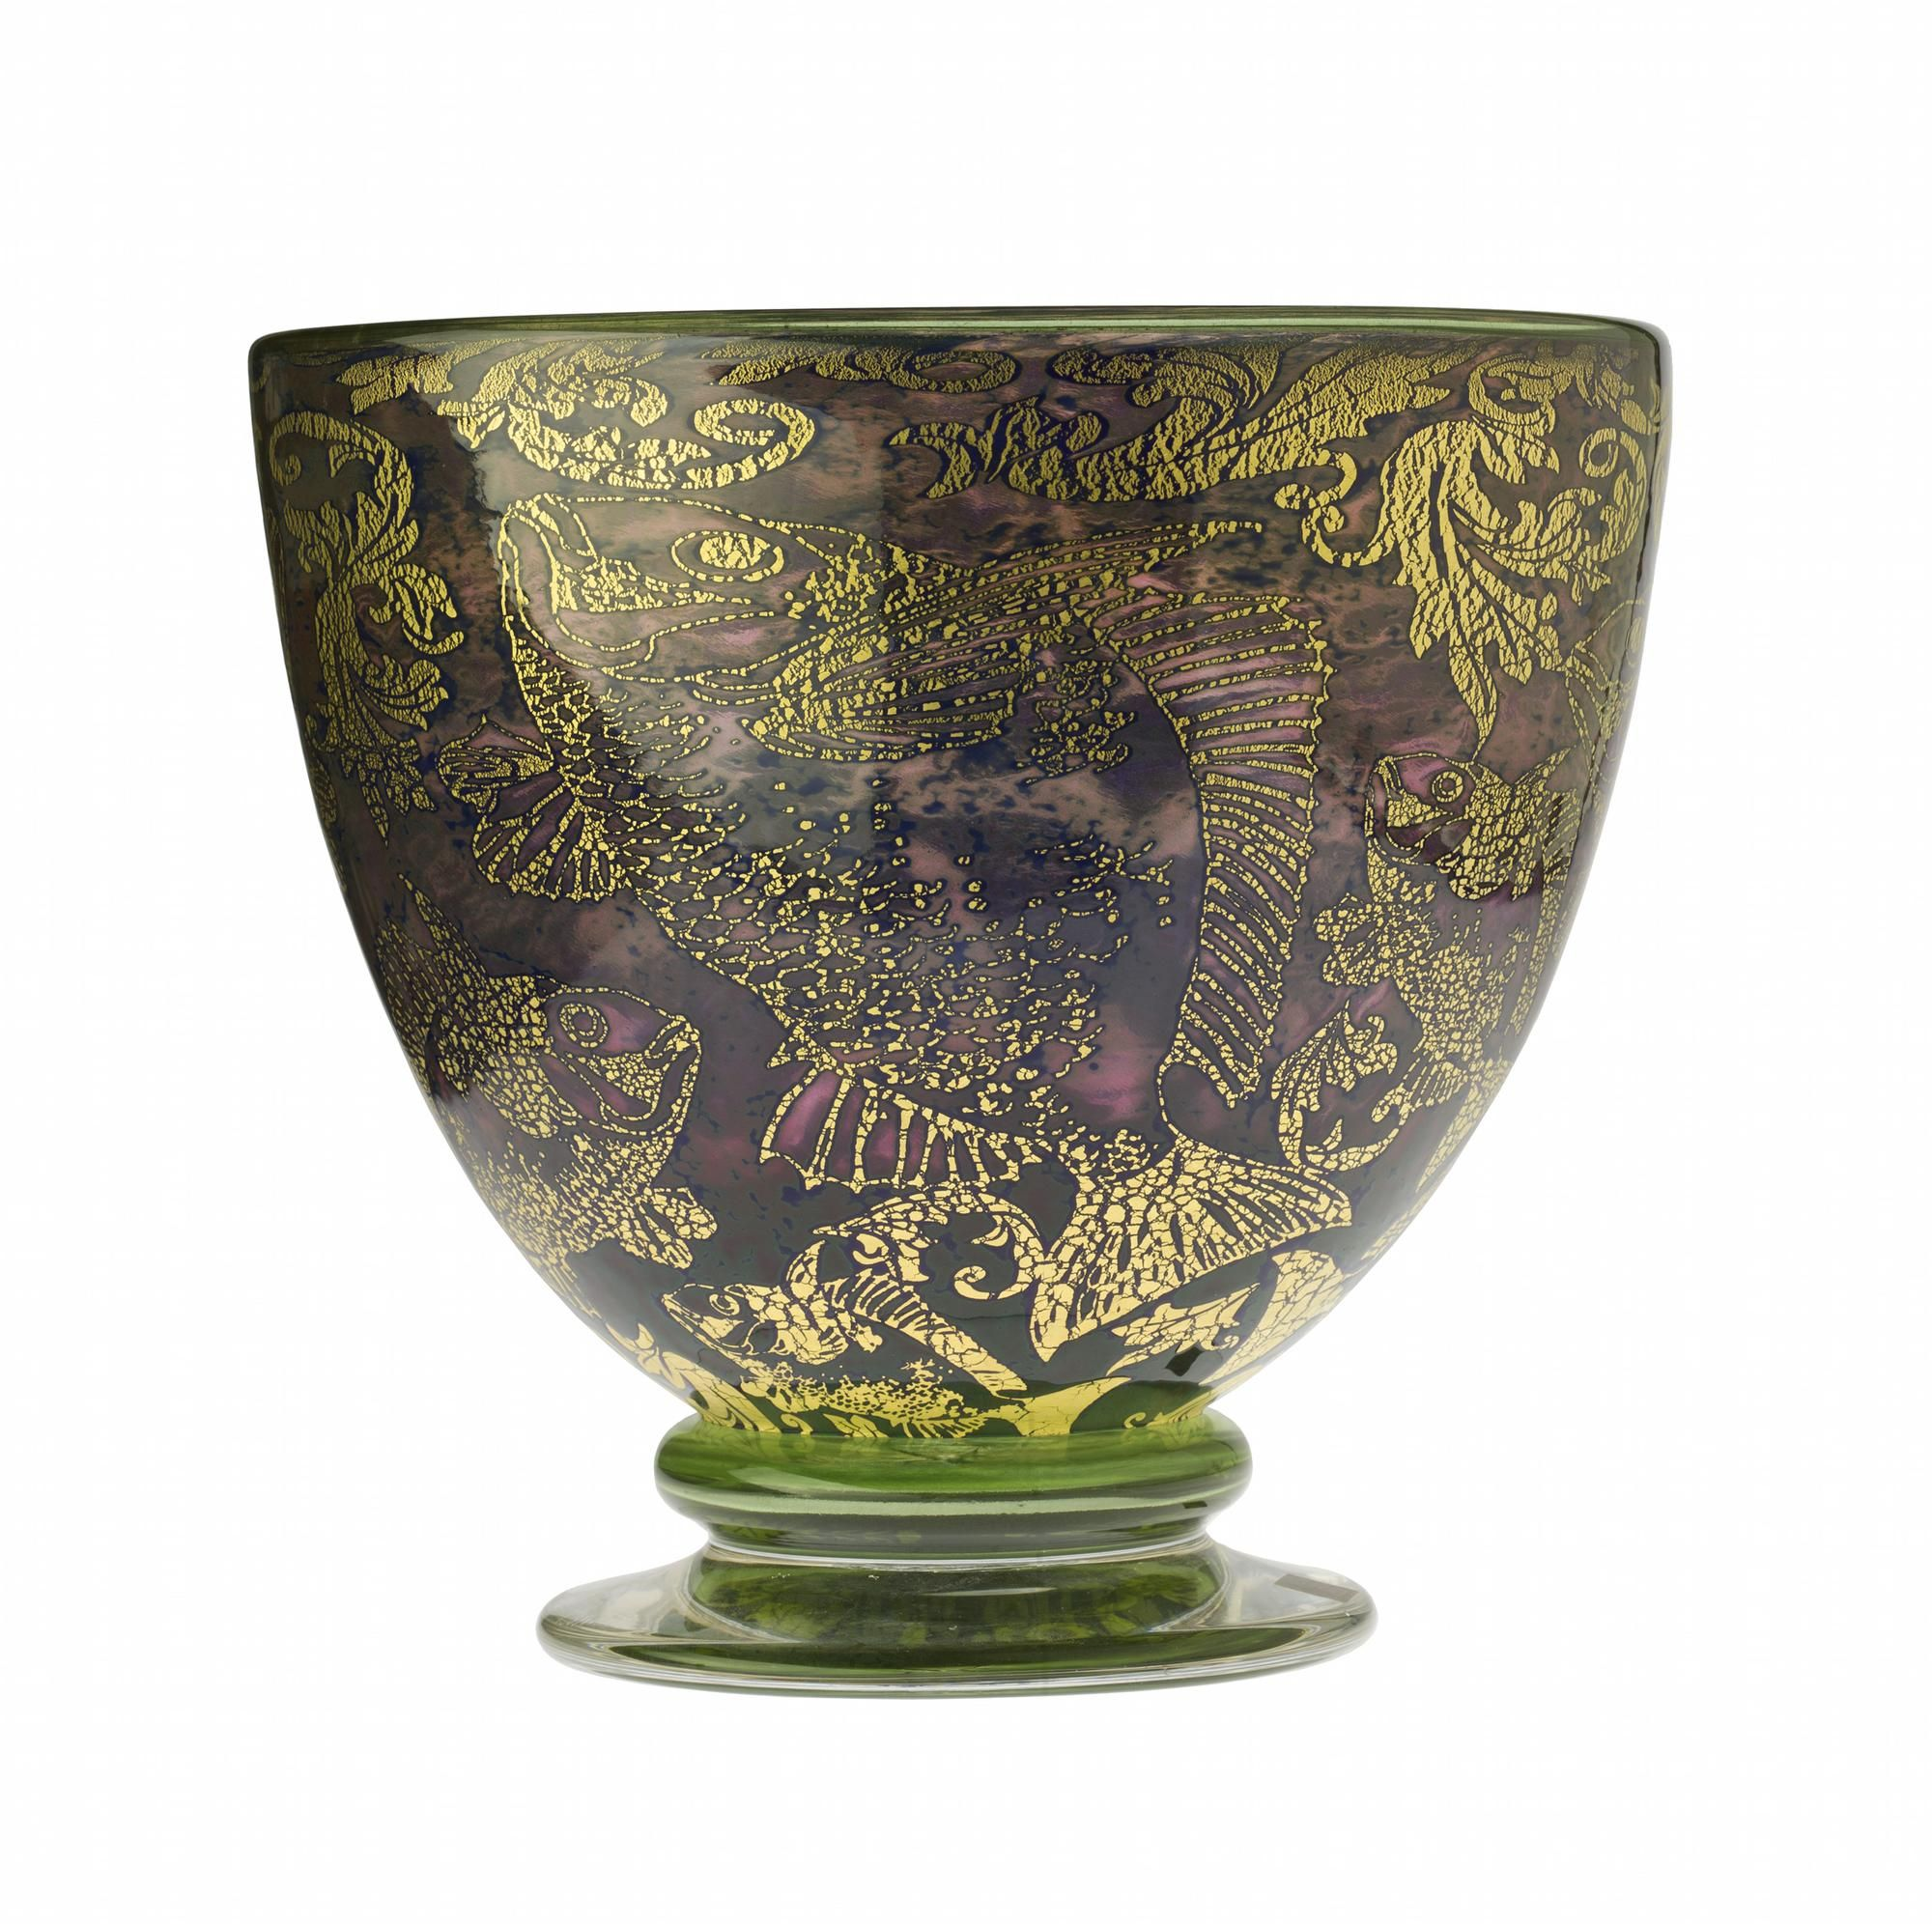 Fish Bowl, graal glass with cracked gold foil inclusions